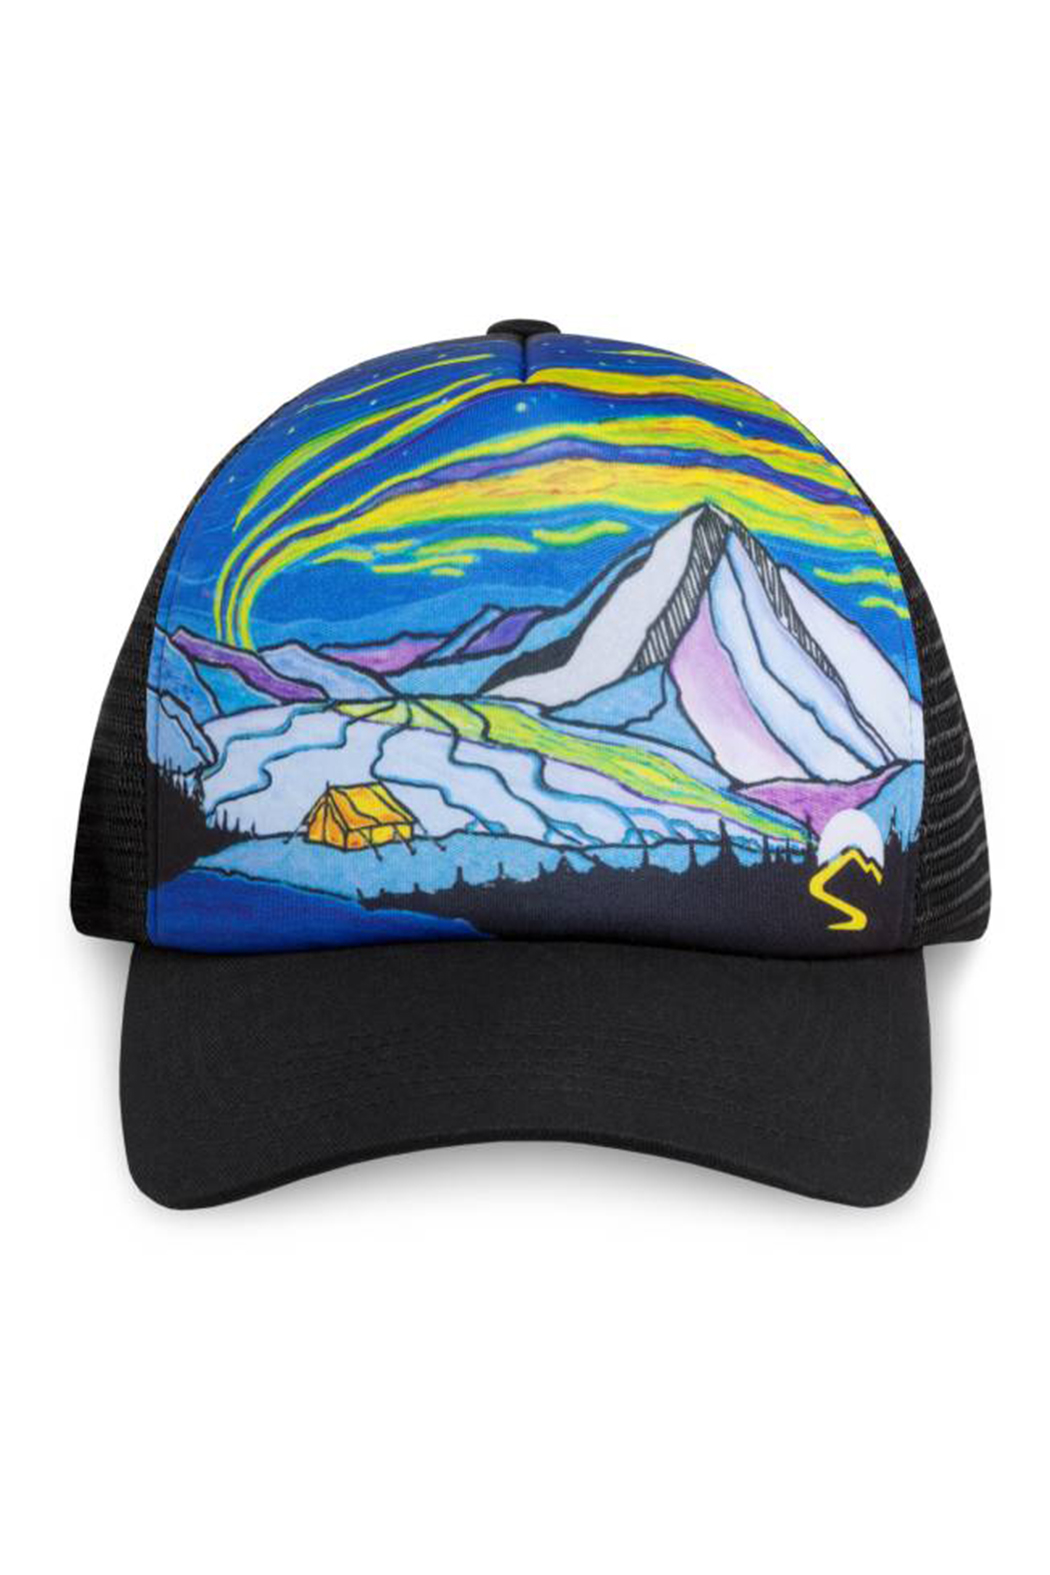 Sunday Afternoons Northern Lights Trucker Hat - Main Image